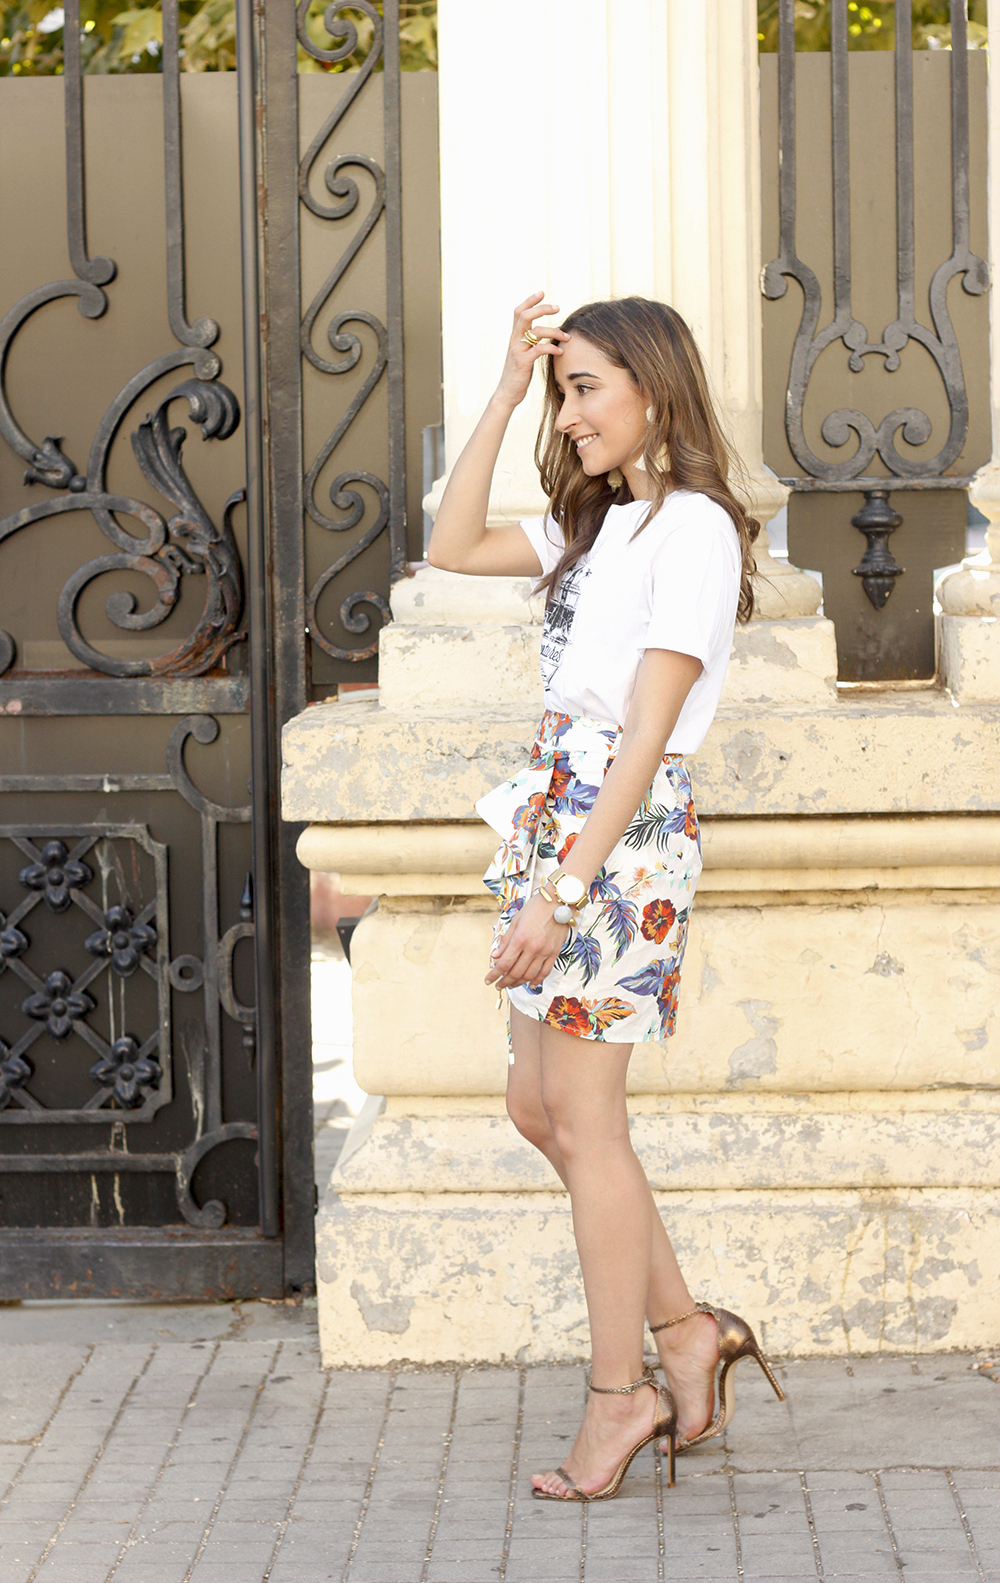 Tropical Floral skirt heels summer outfit fashion style12